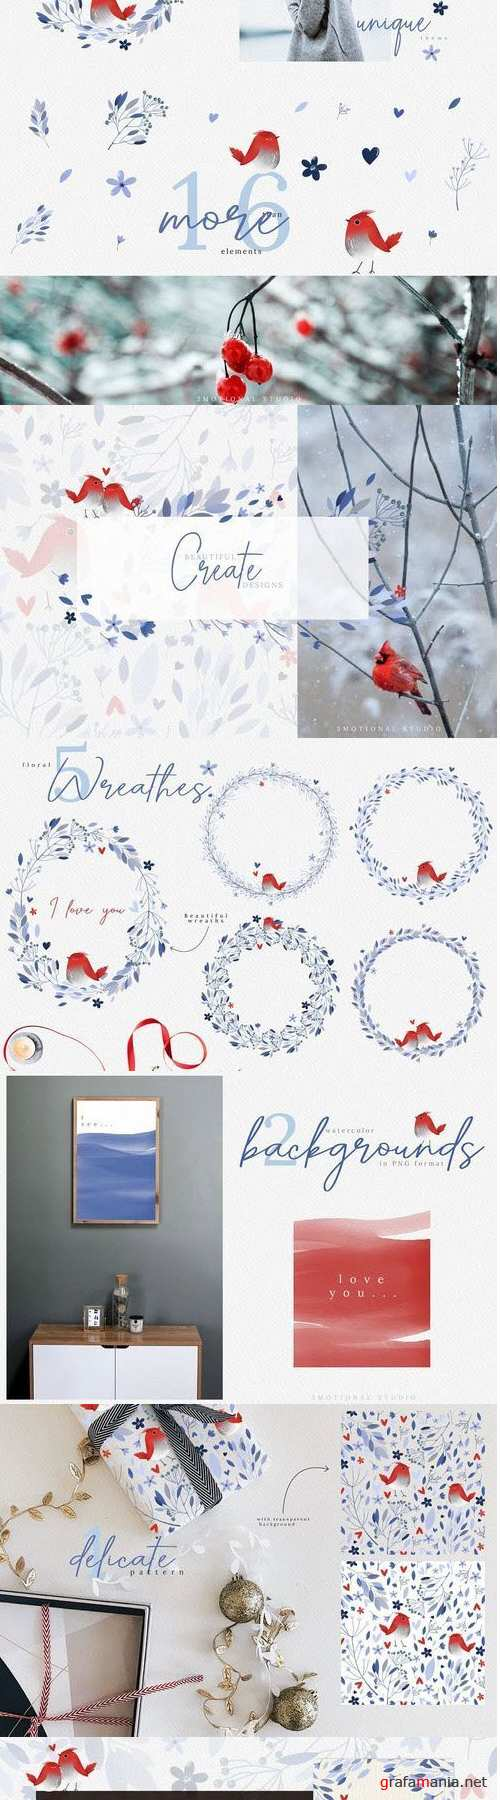 Watercolor Winter Flower Collection high res png - 414433